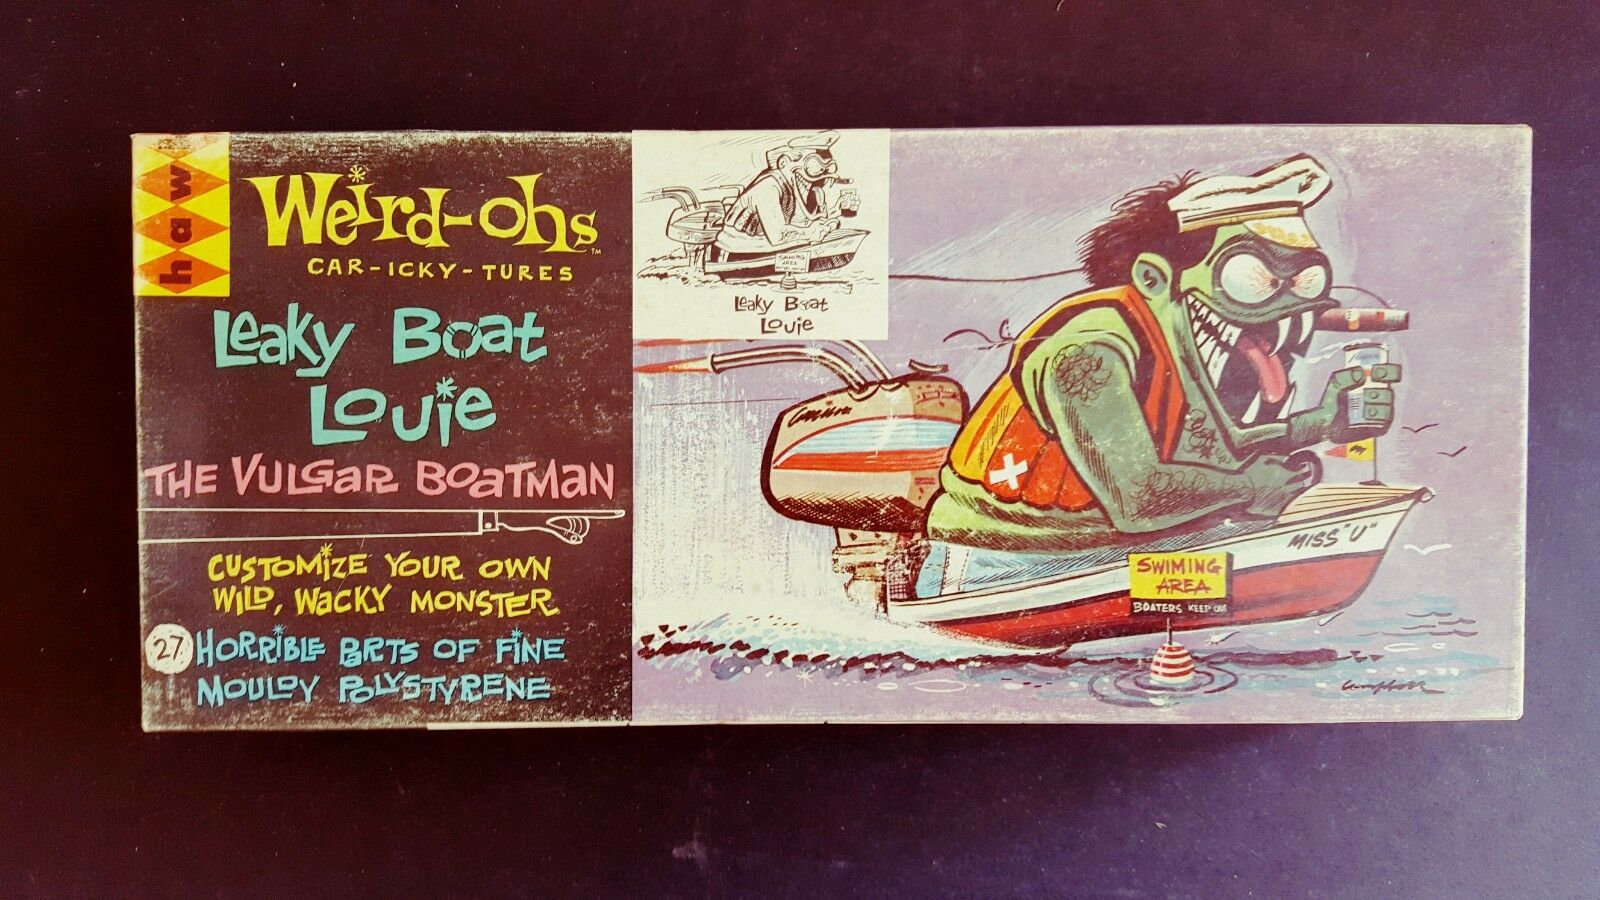 VERY.RARE HAWK  WEIRD-OHS LEAKY BOAT LOUIE  ORIGINAL. ISS 534-100 COMPLETE 1963